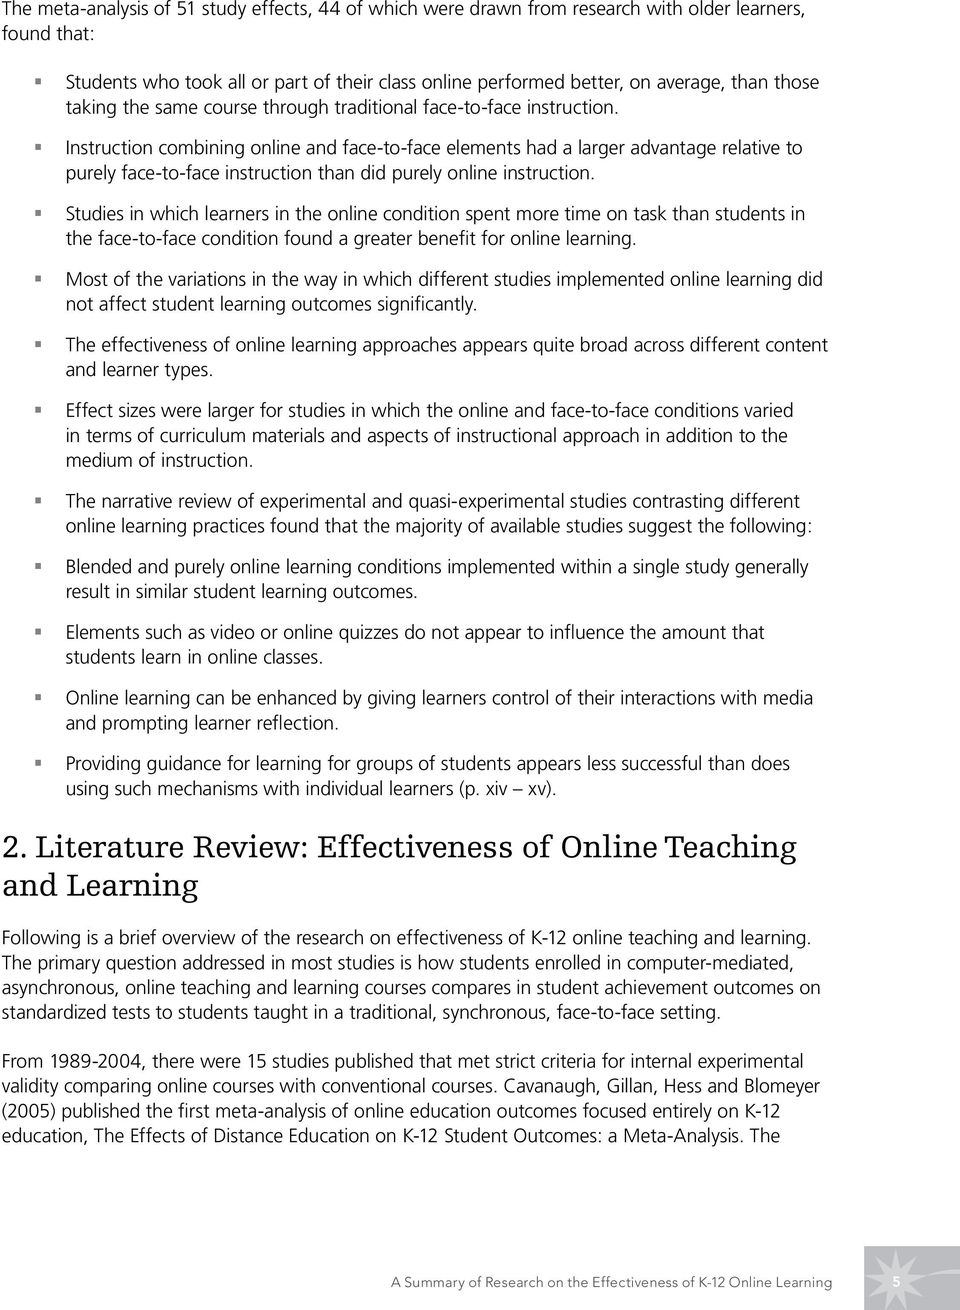 Instruction combining online and face-to-face elements had a larger advantage relative to purely face-to-face instruction than did purely online instruction.